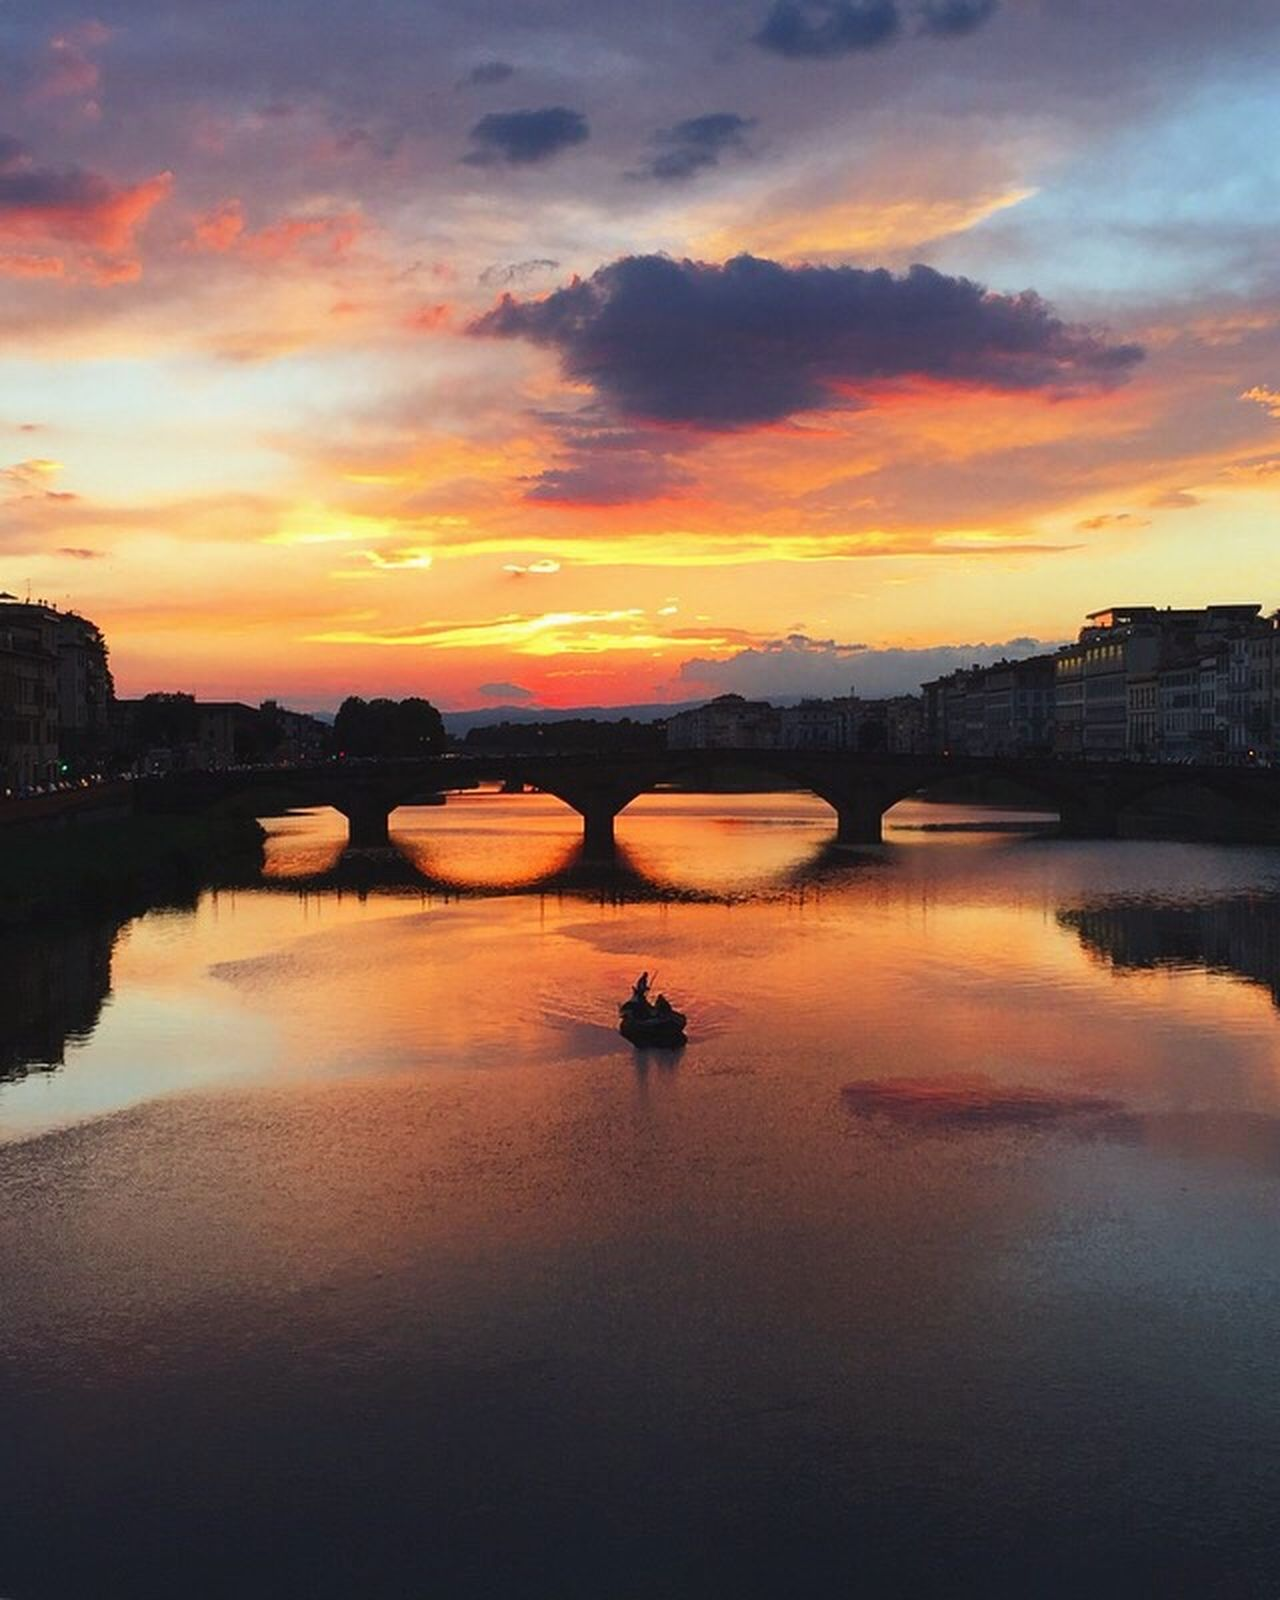 Water Reflection Sunset Sky Cloud - Sky River Nature Waterfront Beauty In Nature Scenics Tranquility Silhouette Italy Architecture Florence Day Beauty First Eyeem Photo